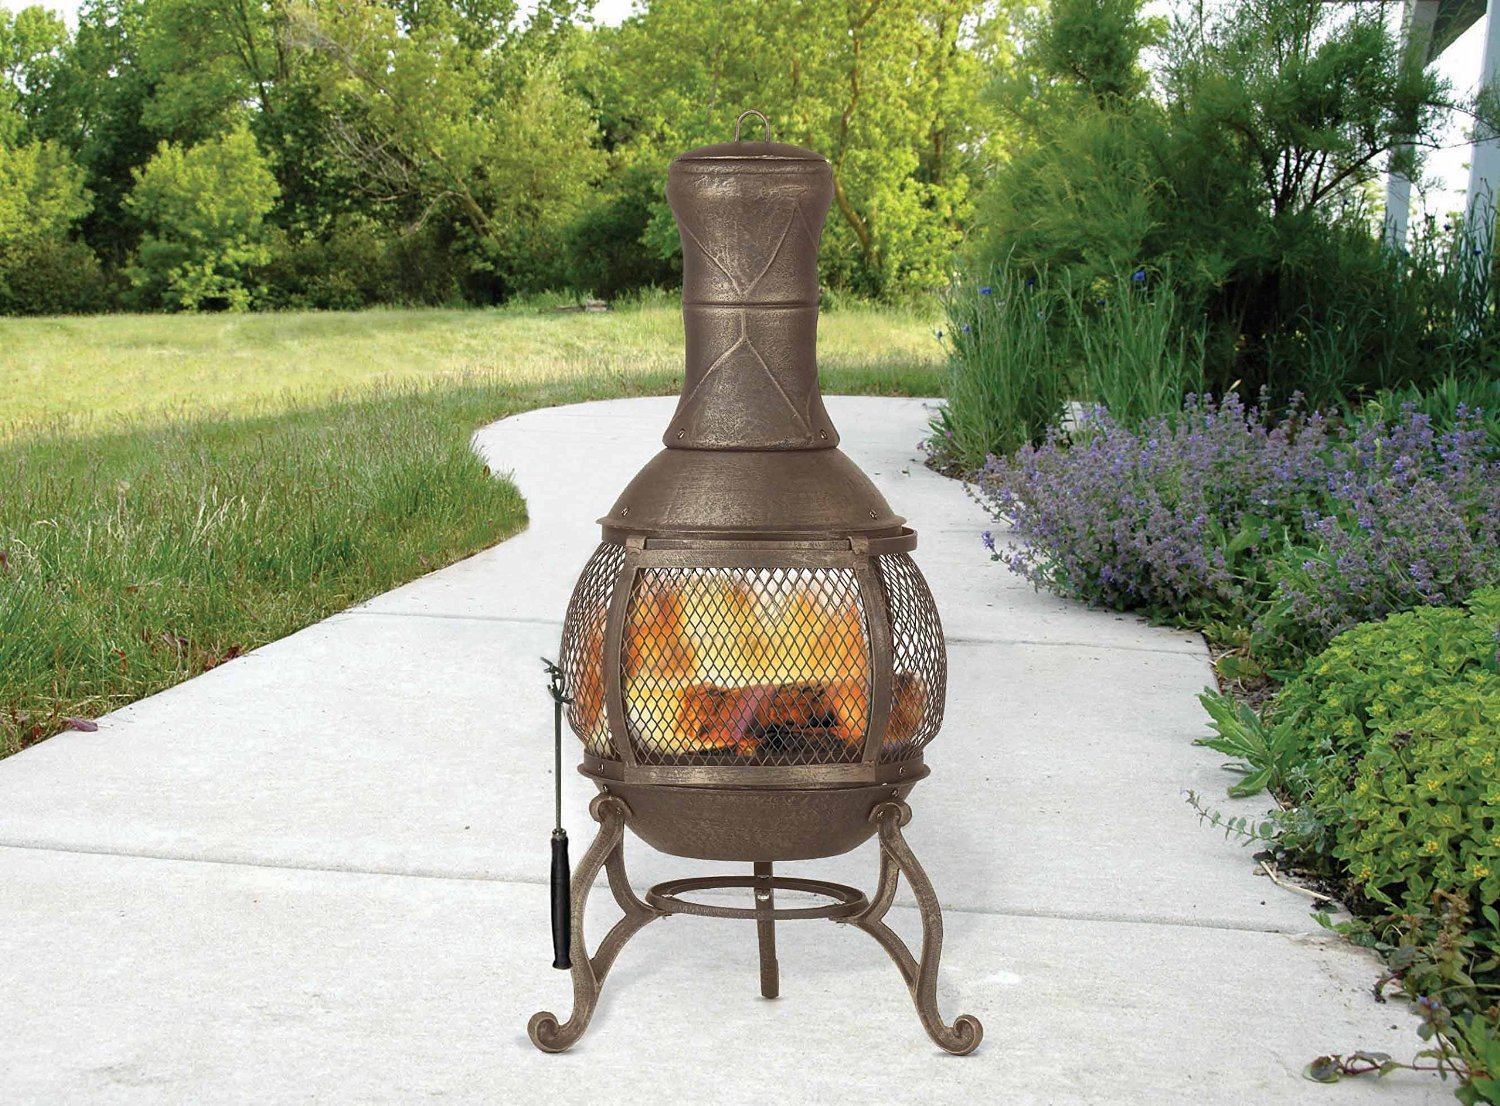 Awesome Deckmate Corona Outdoor Chimenea Fireplace Model 30075